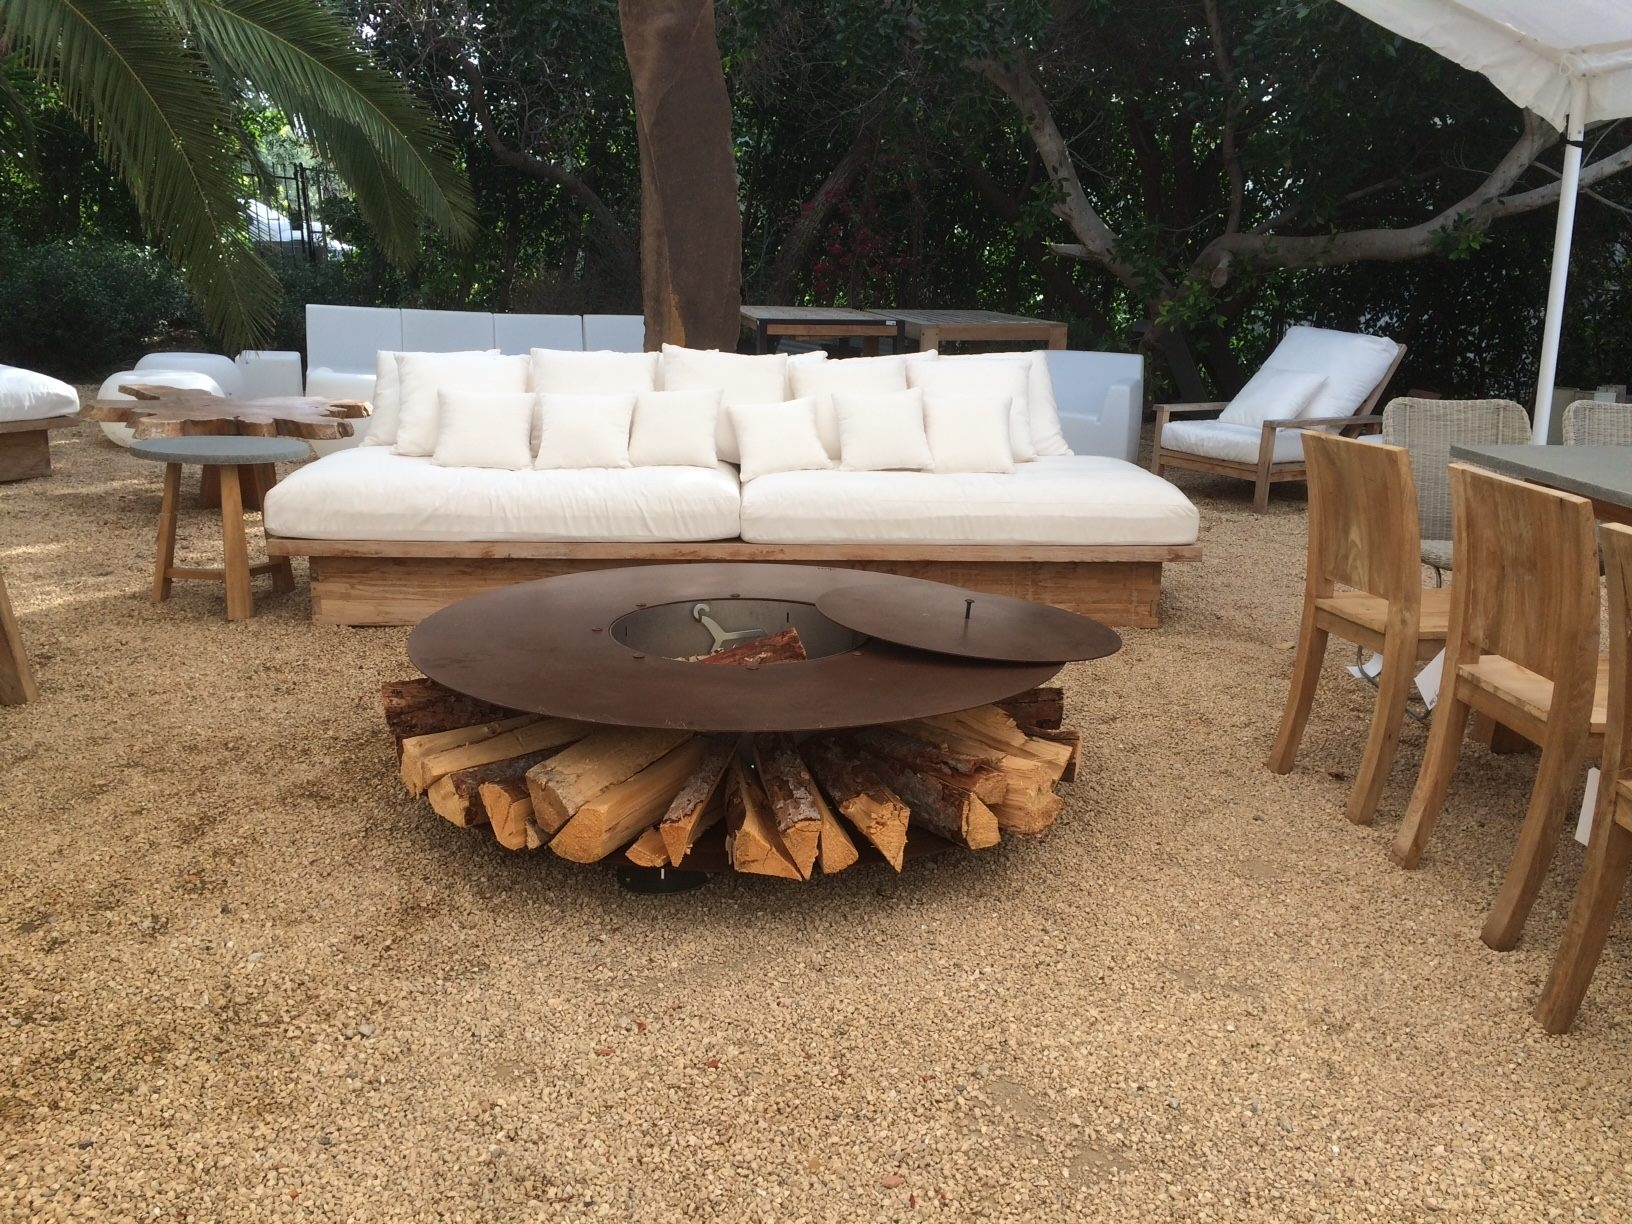 Outdoor corten steel fire pit 145 cm zero 145 by ak47 for Outdoor modern fire pit